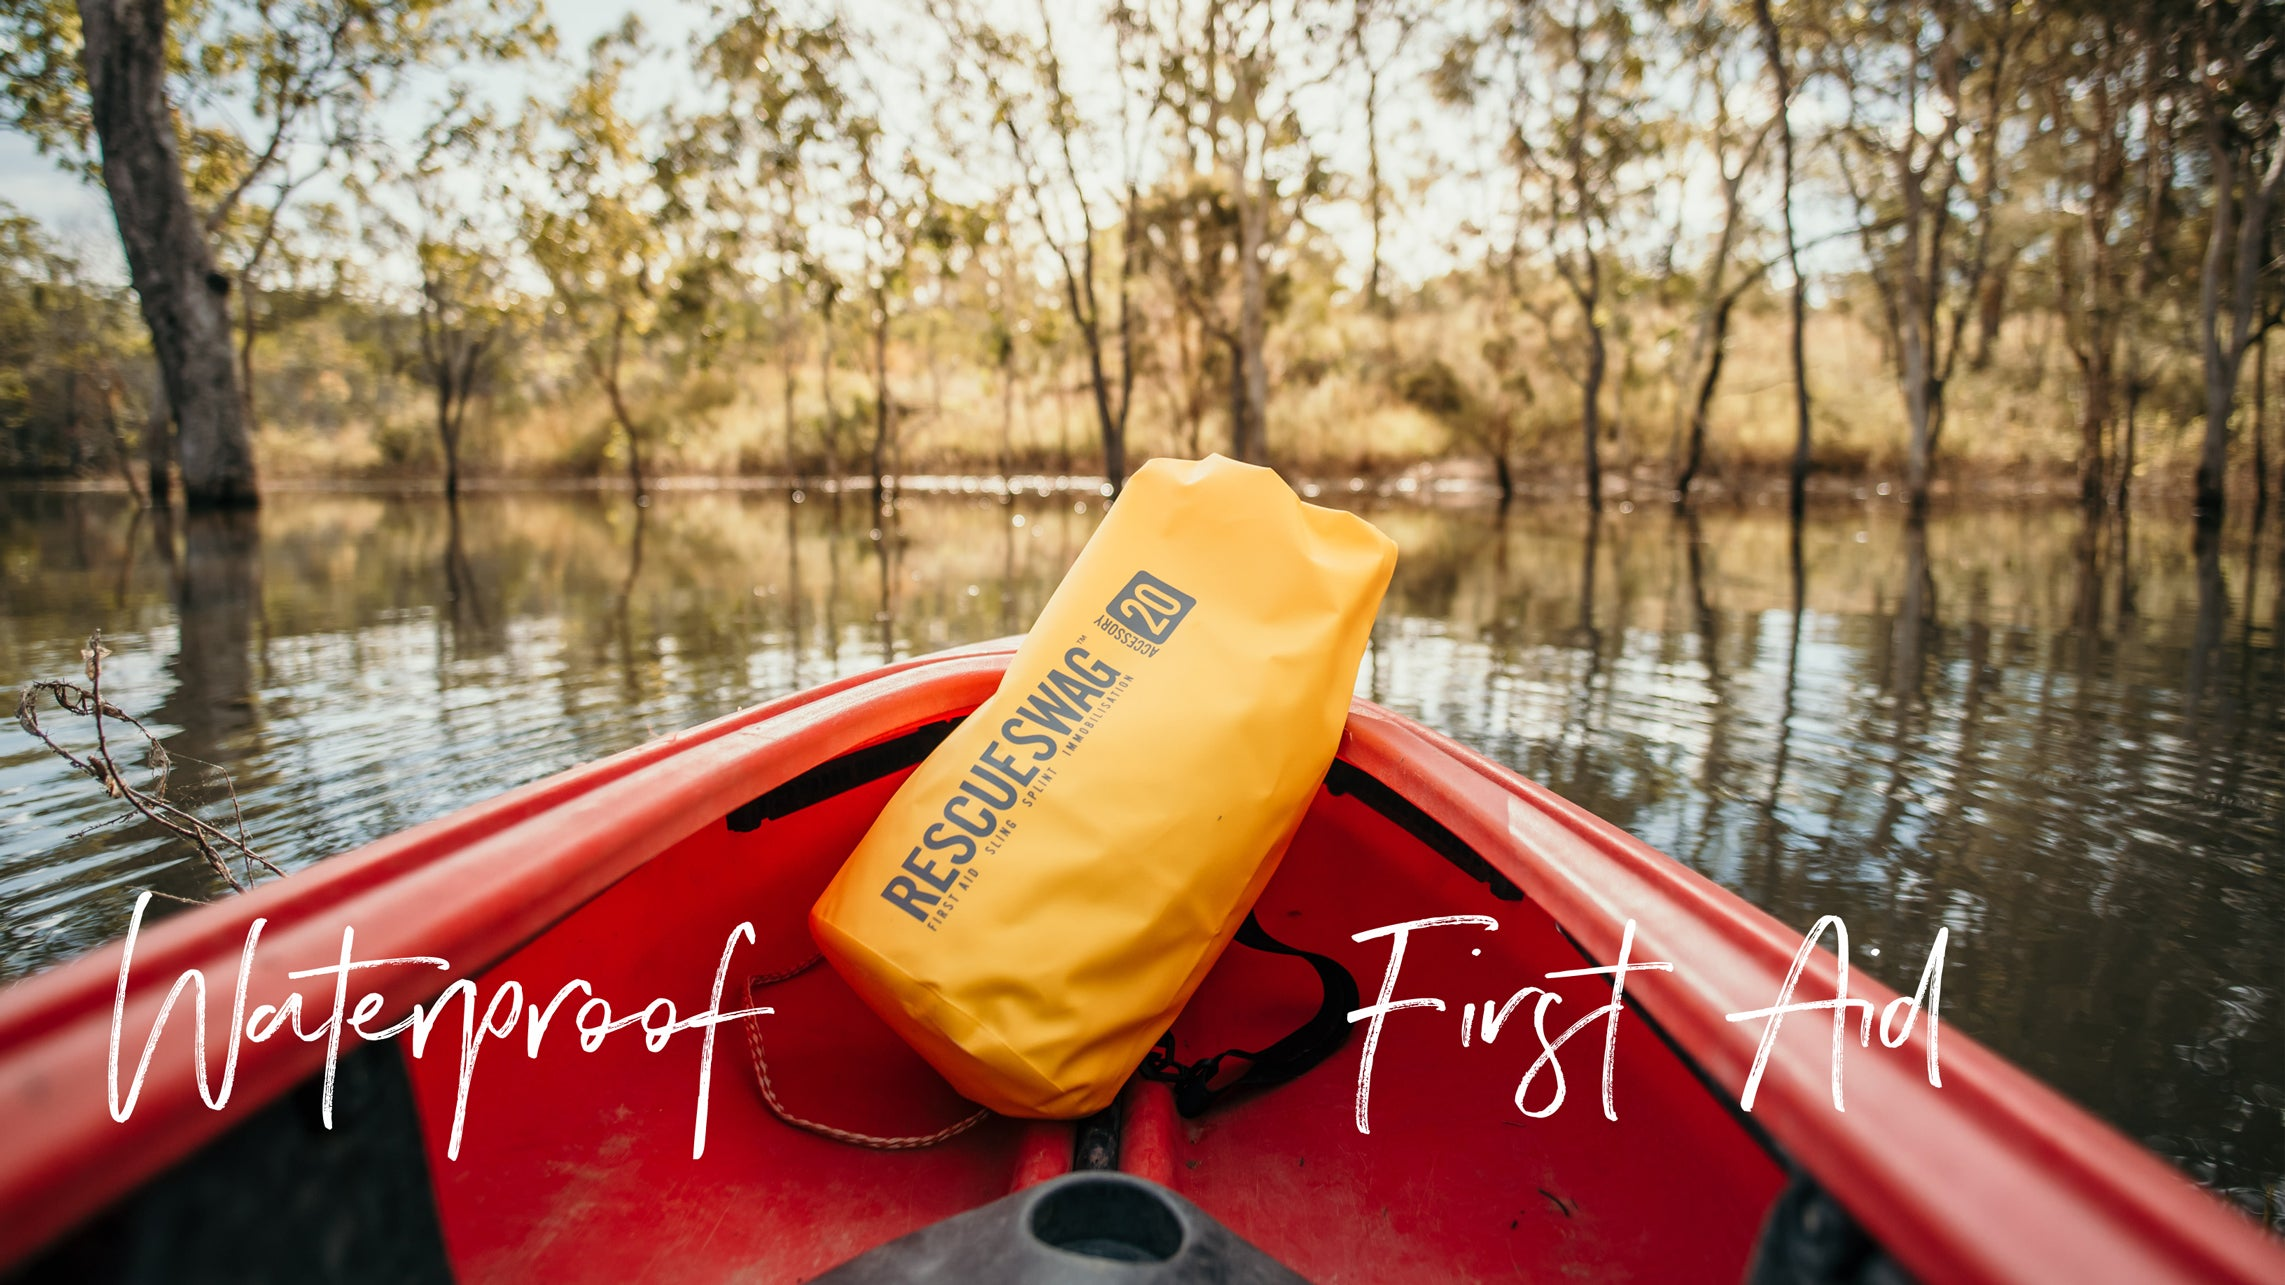 WATERPROOF & DUSTPROOF YOUR OUTDOOR FIRST AID KIT